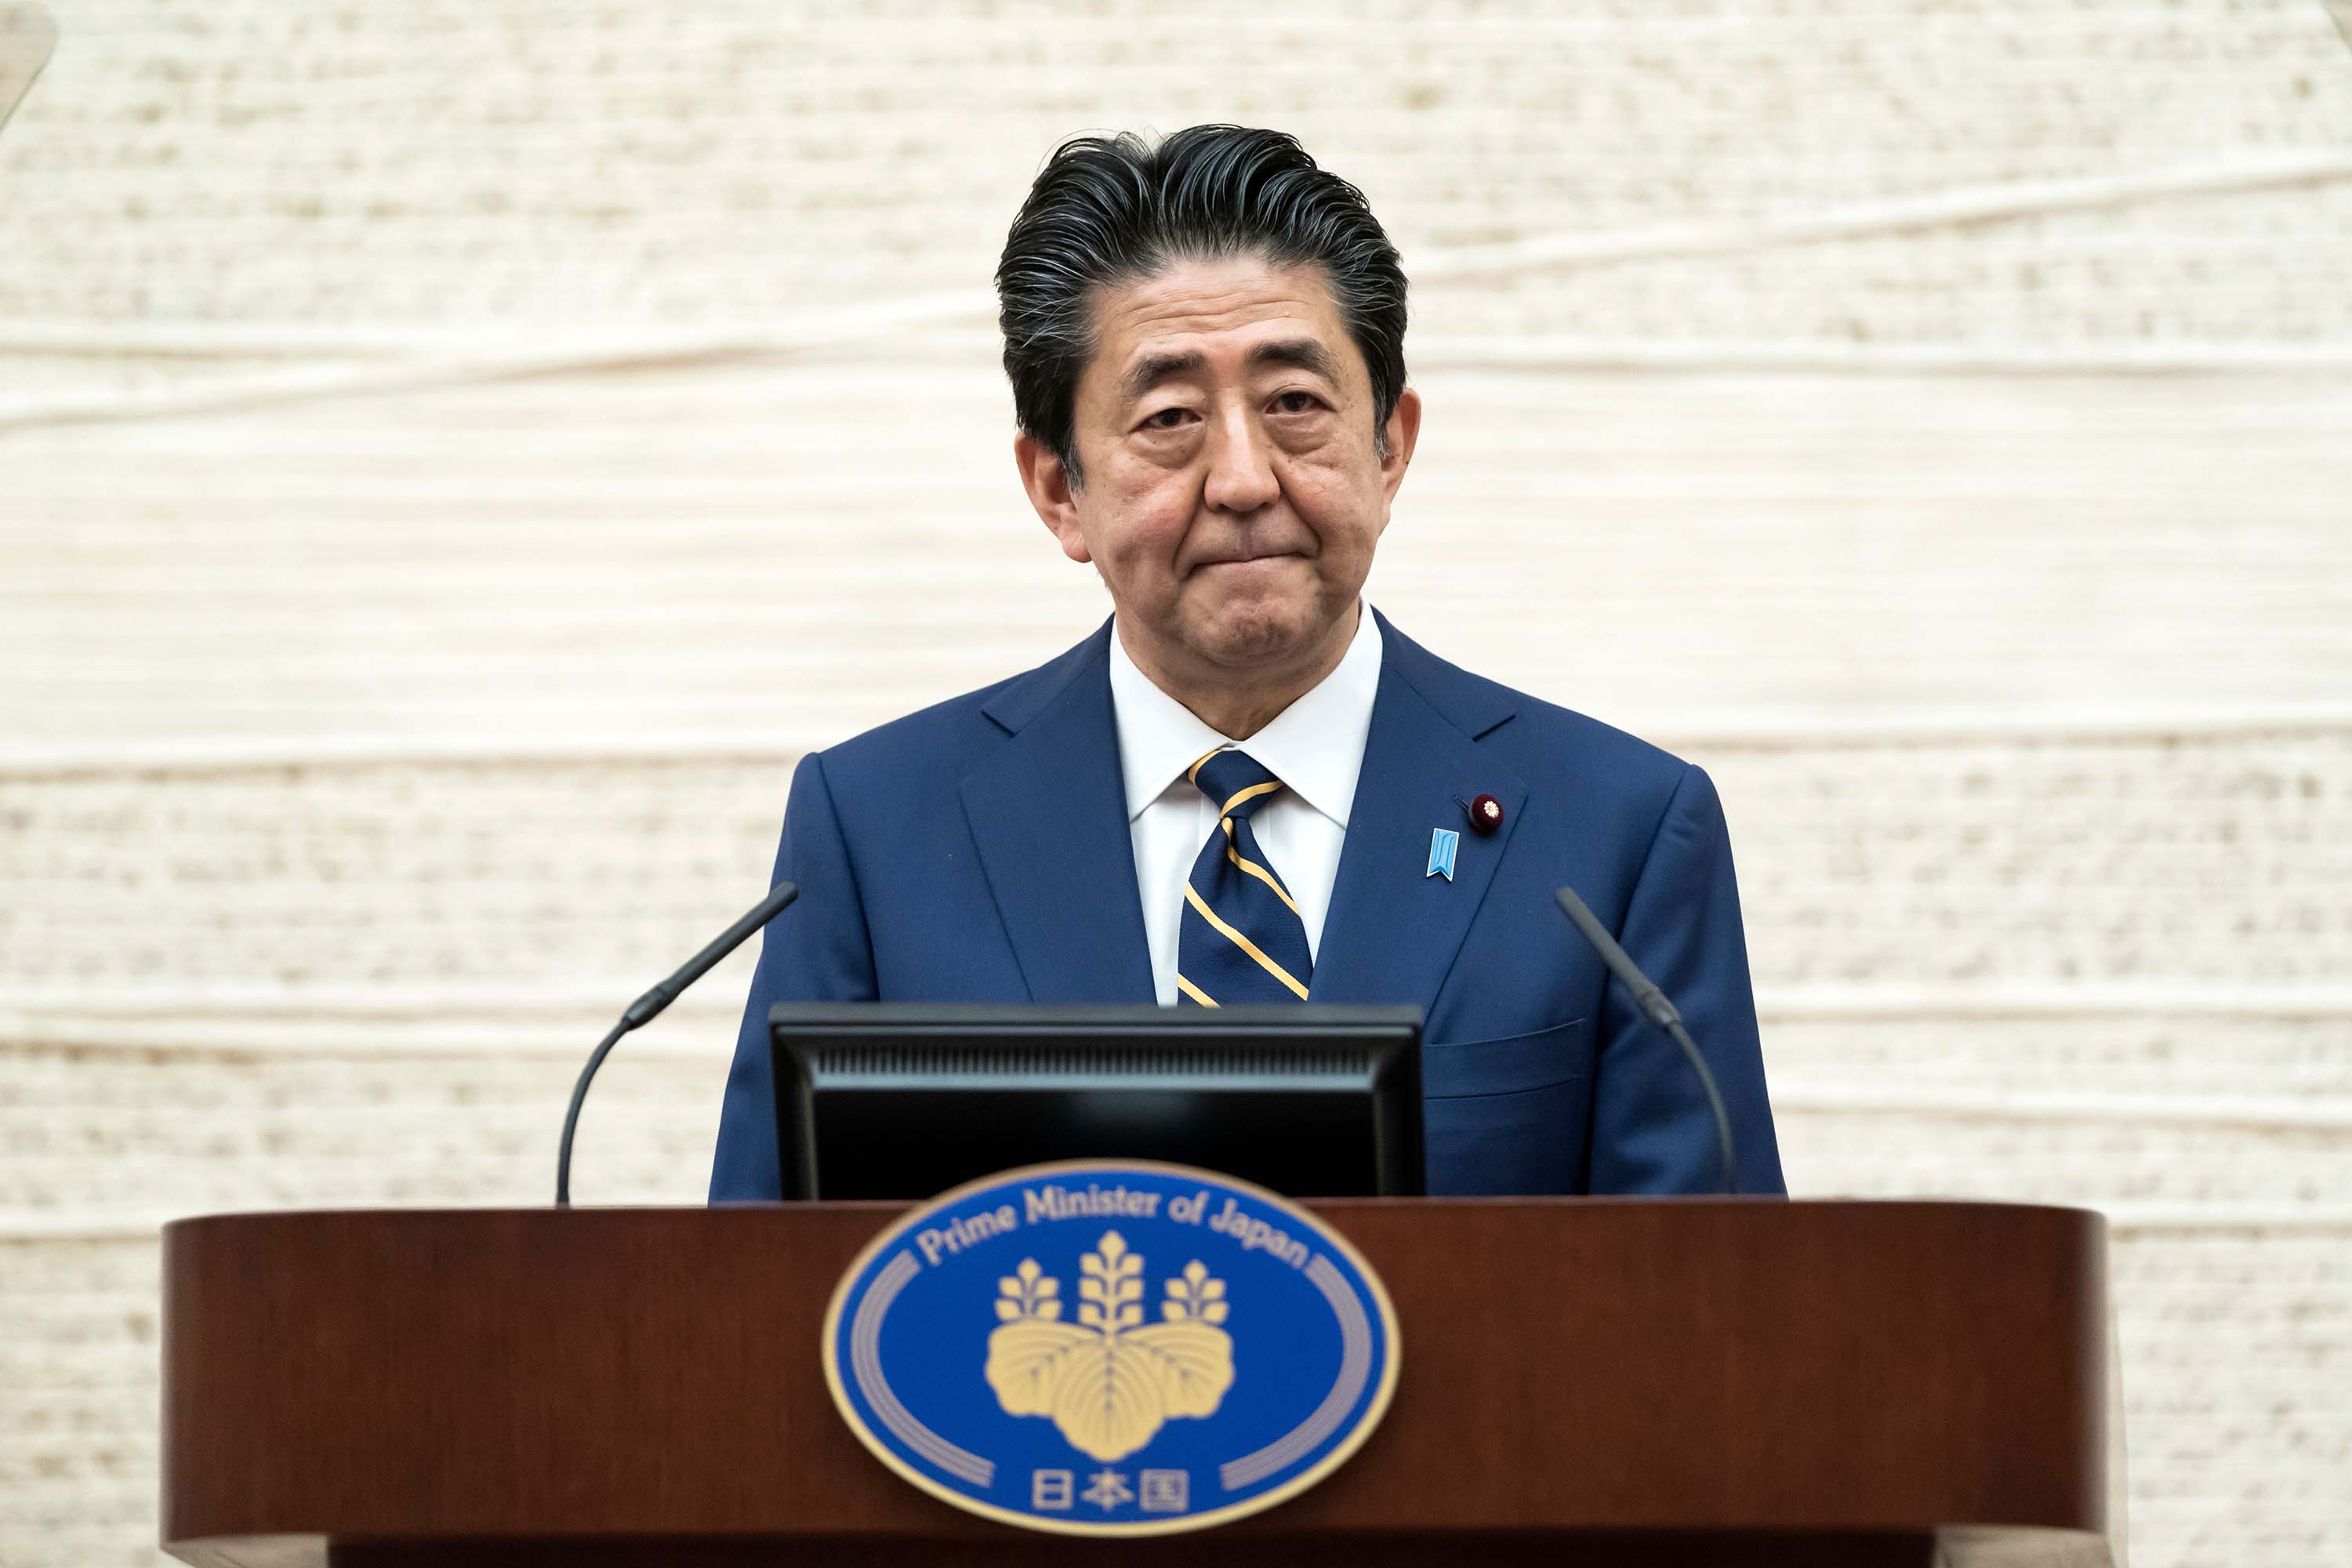 Japan's Prime Minister Shinzo Abe speaks during a press conference in Tokyo on April 7.